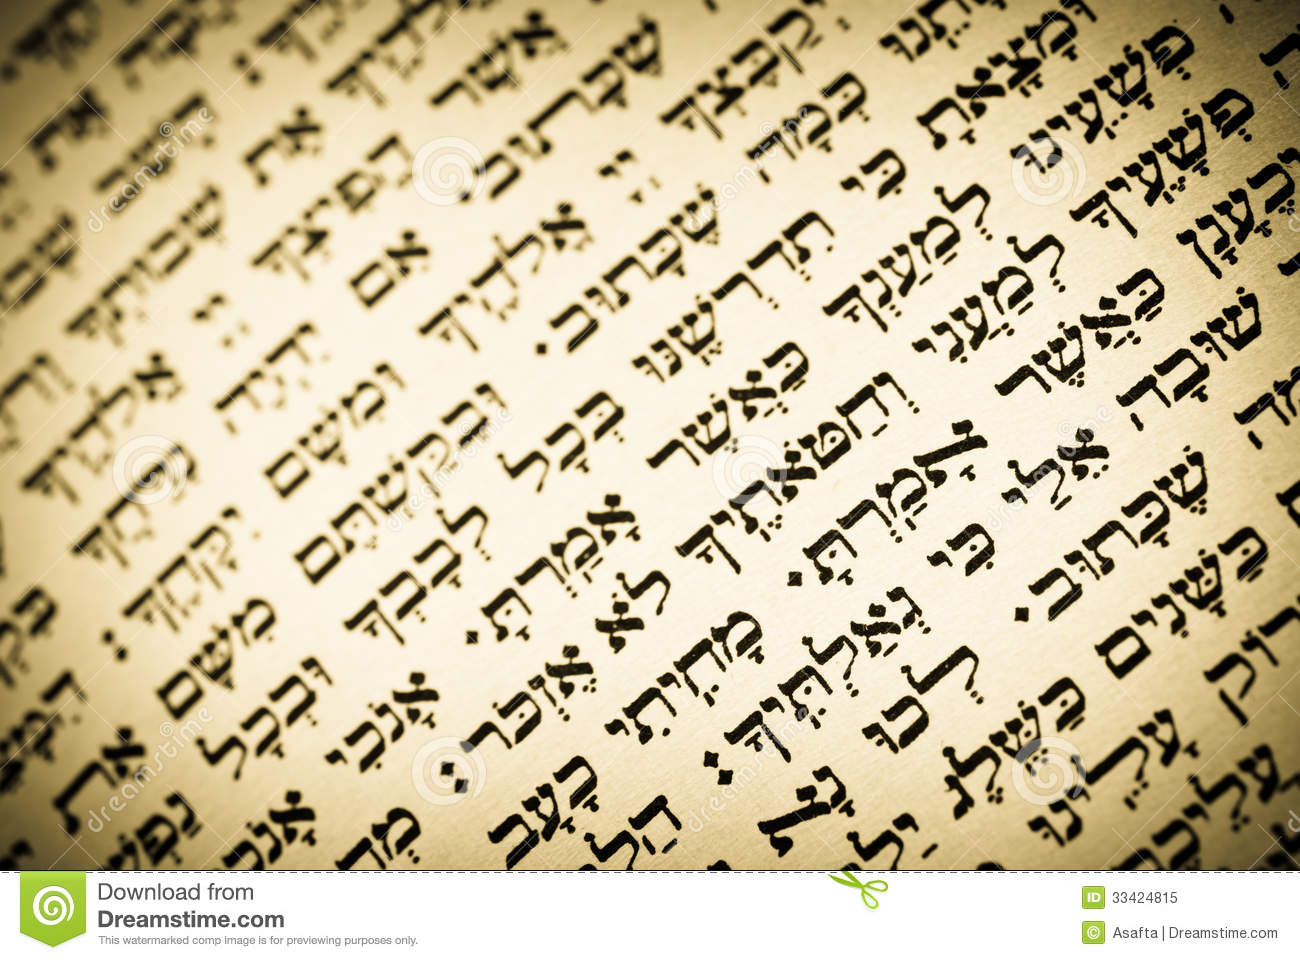 Learn biblical hebrew dobson pdf to excel